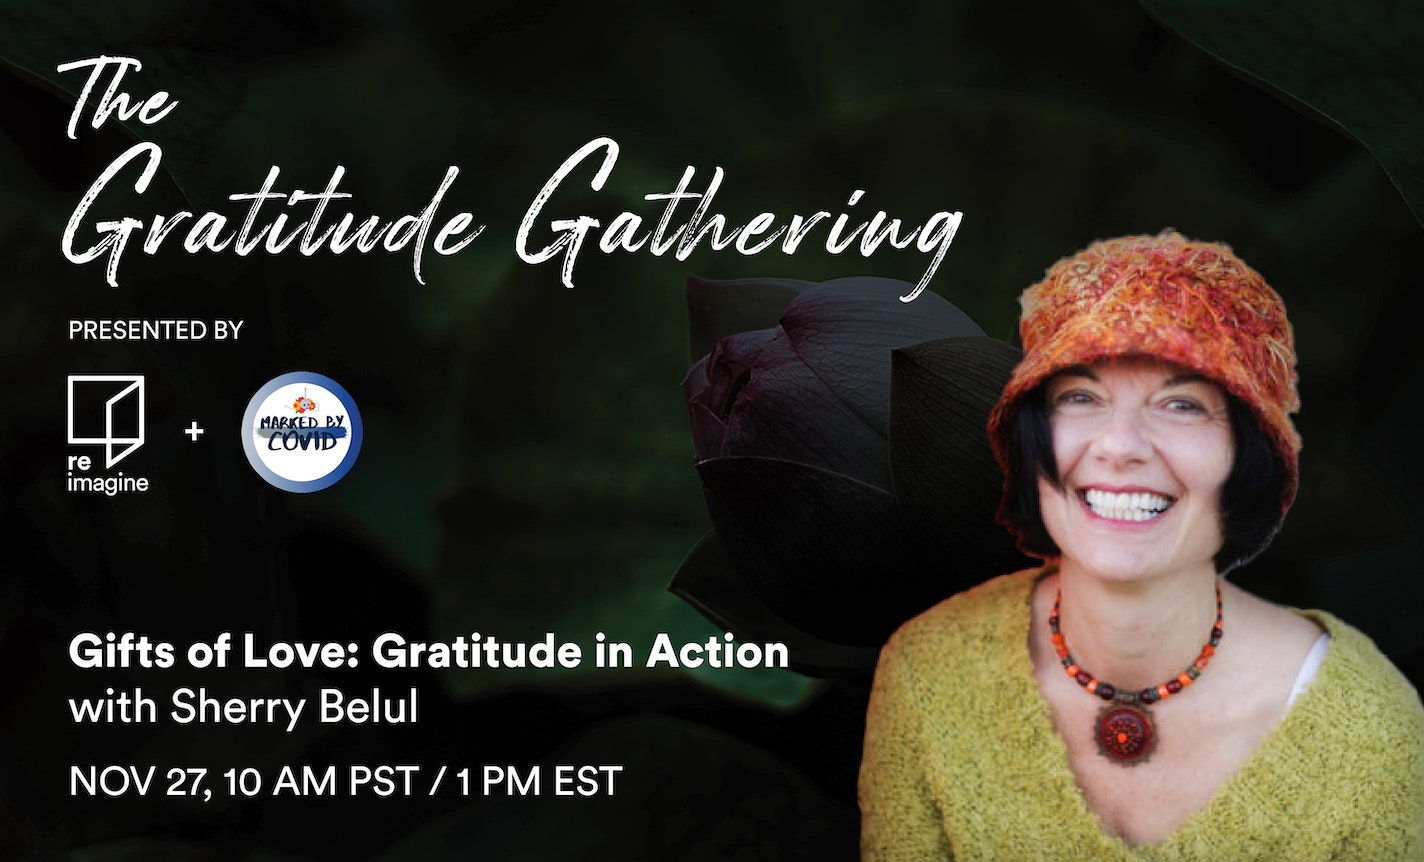 Gifts of Love: Gratitude in Action